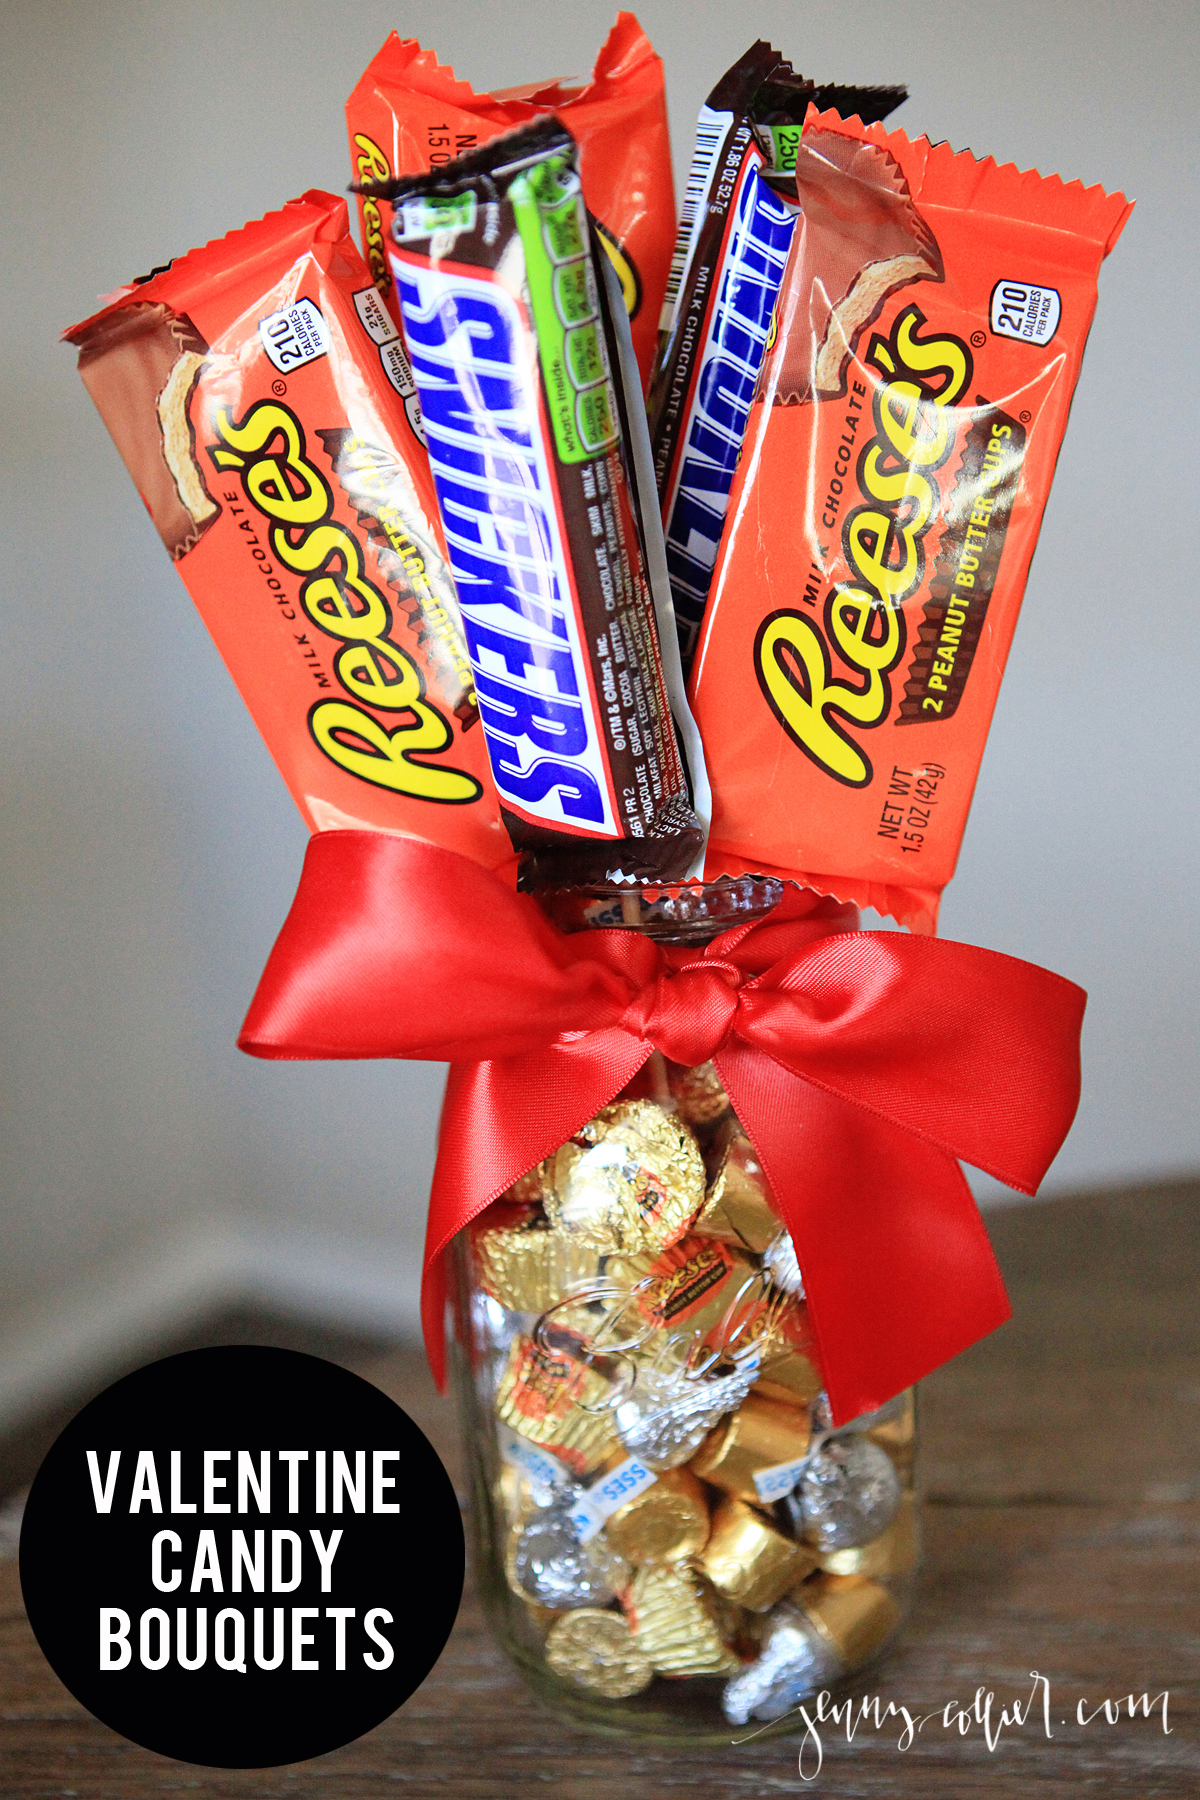 Valentine Candy Bouquets Jenny Collier Blog